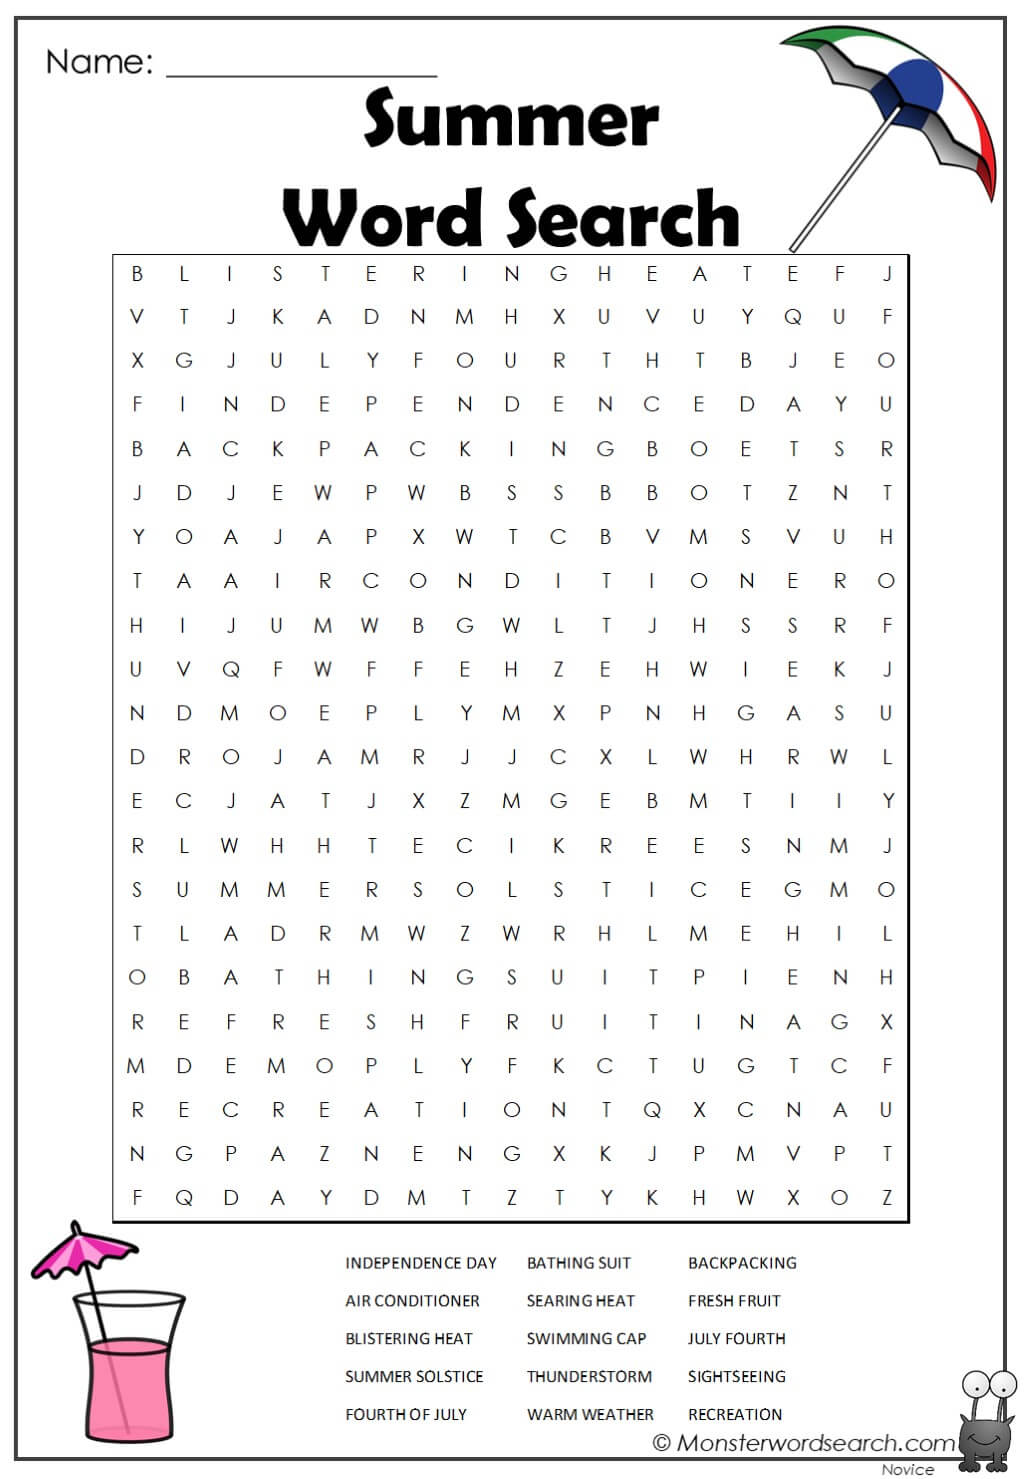 Summer Word Search Monster Word Search